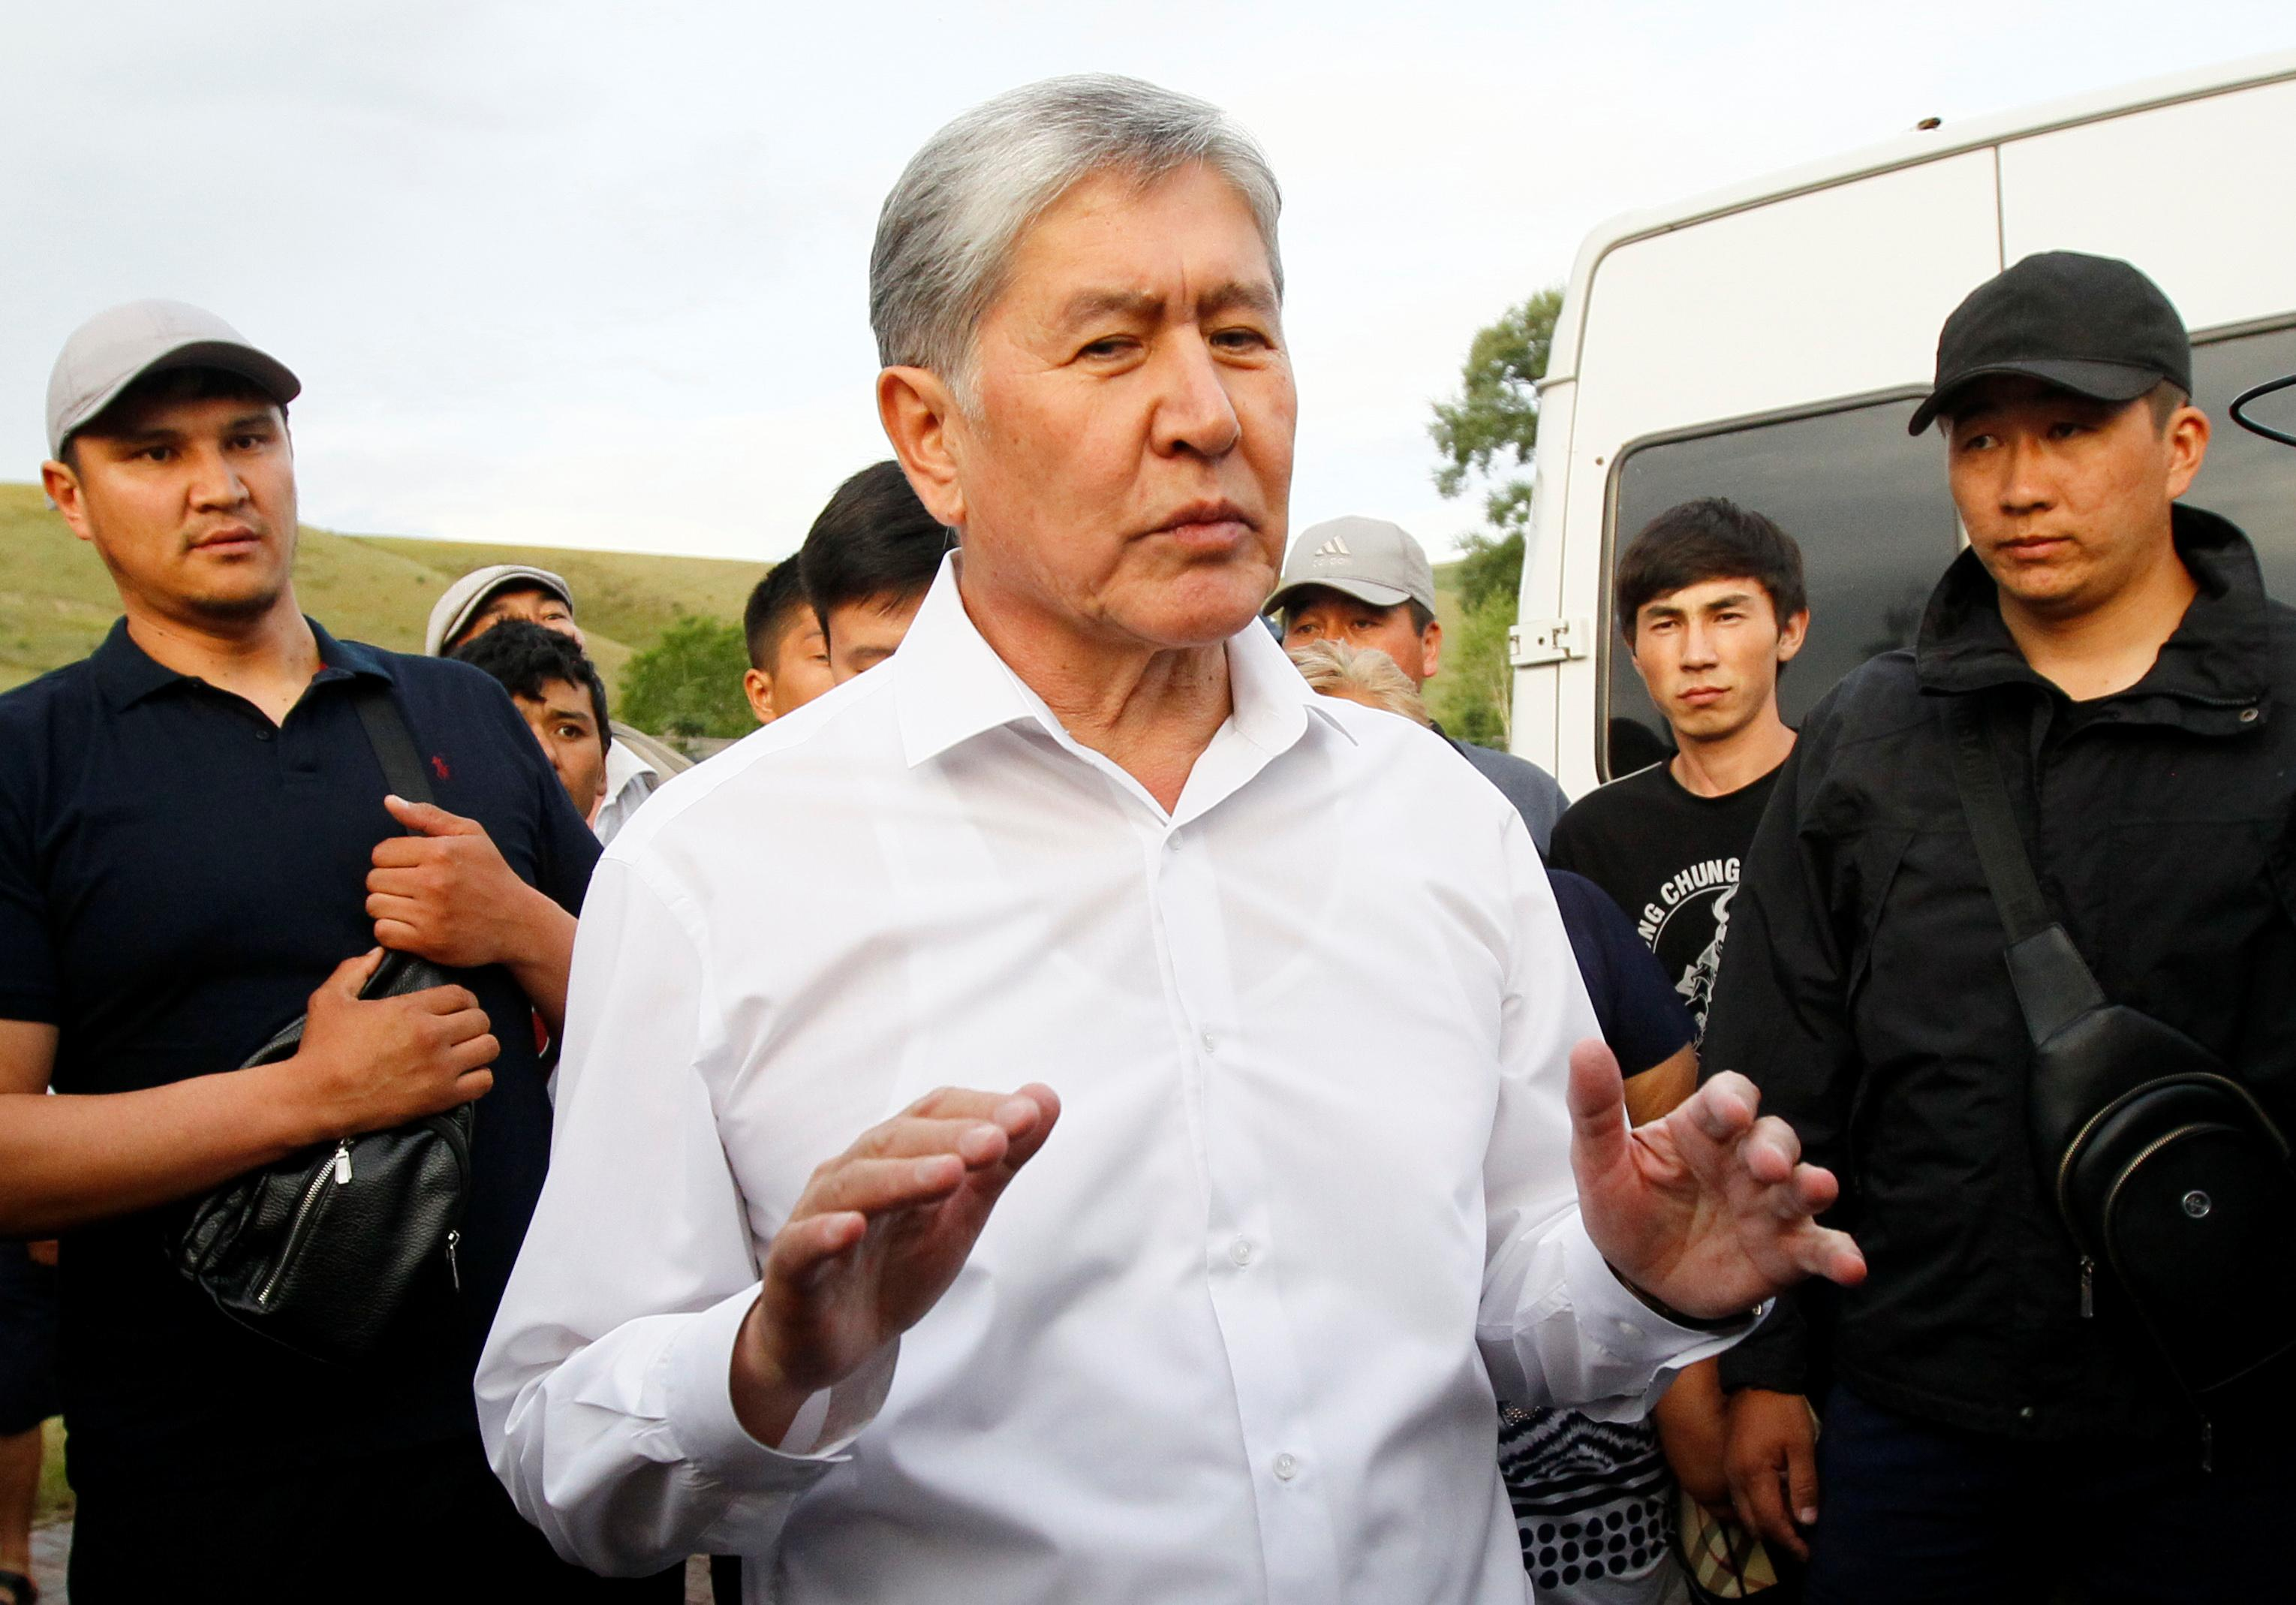 Kyrgyz ex-president arrested, accused of coup plan: state media